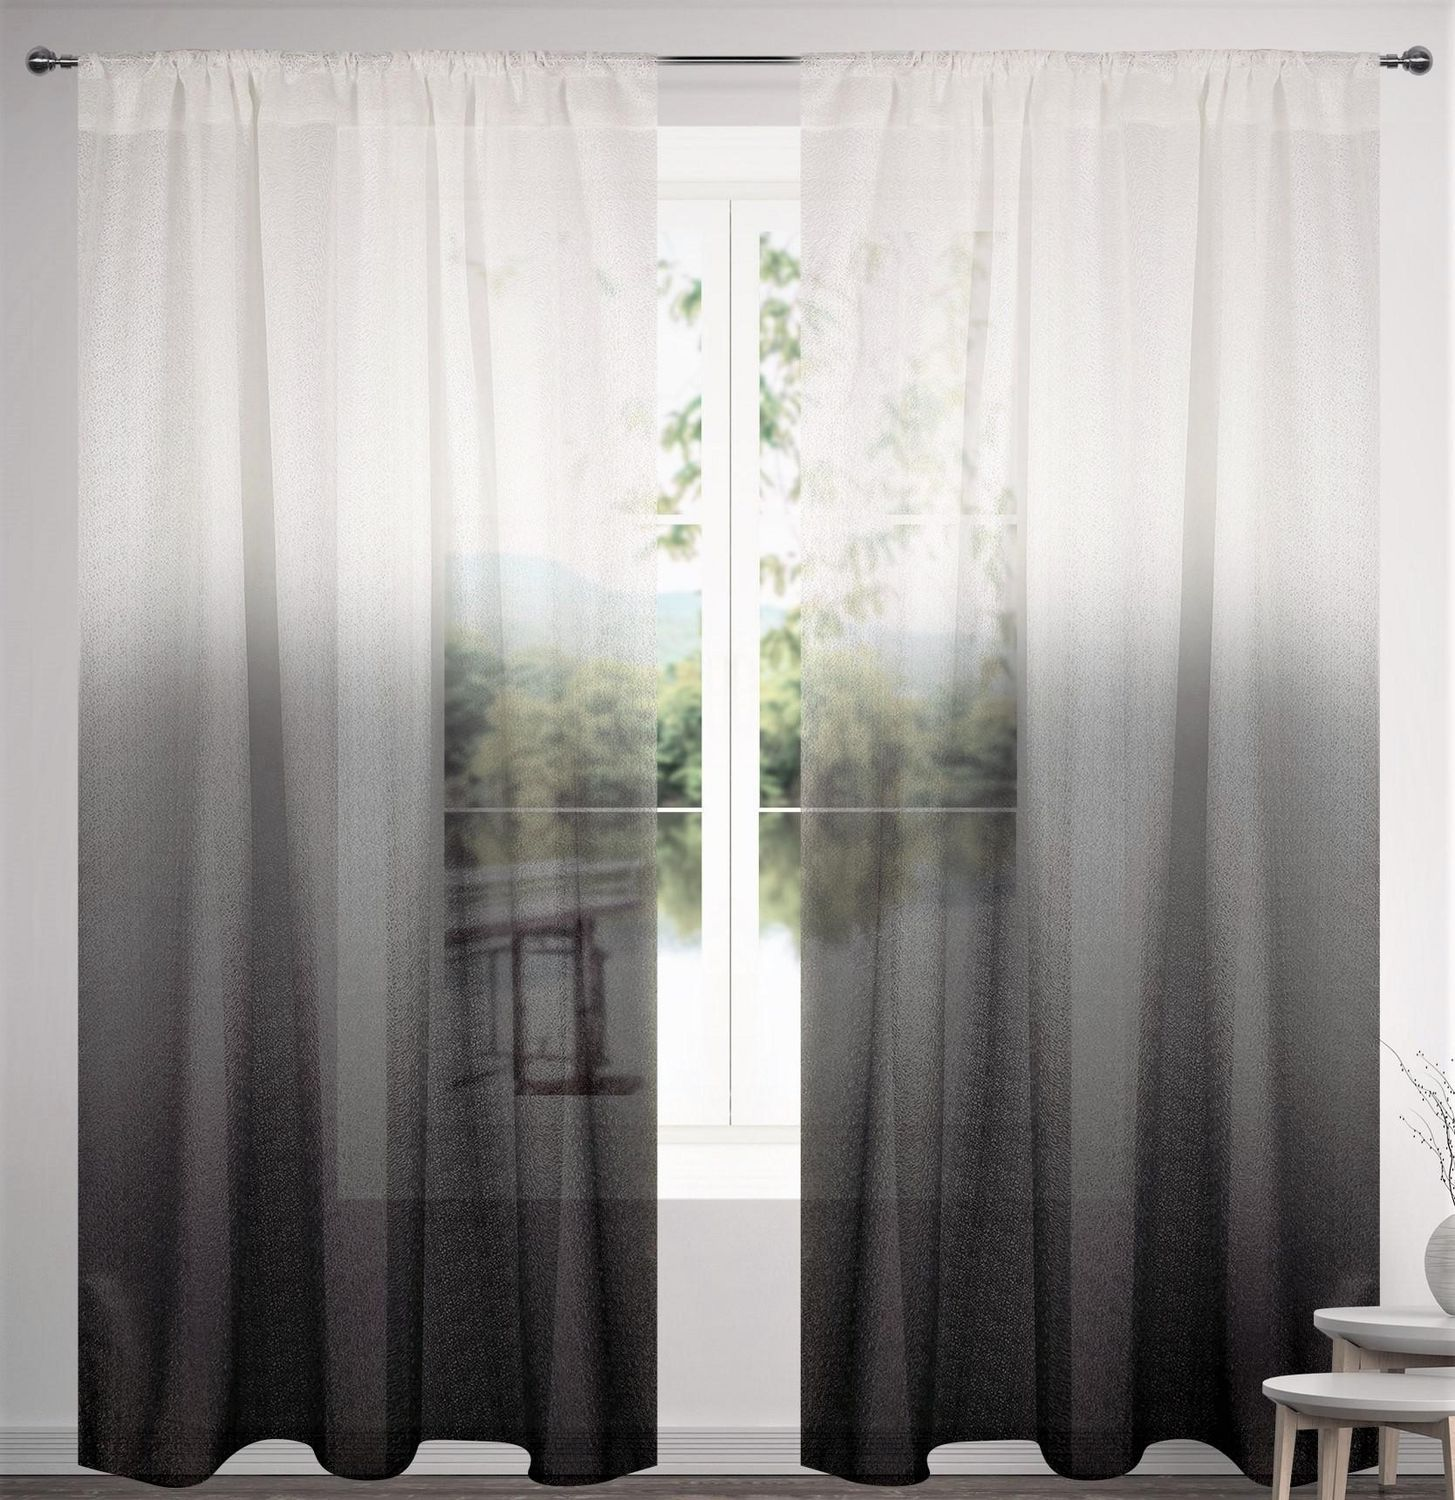 caricia home sheer ombre voile rod pocket curtain panel one 1 piece 54 x 84 white grey black